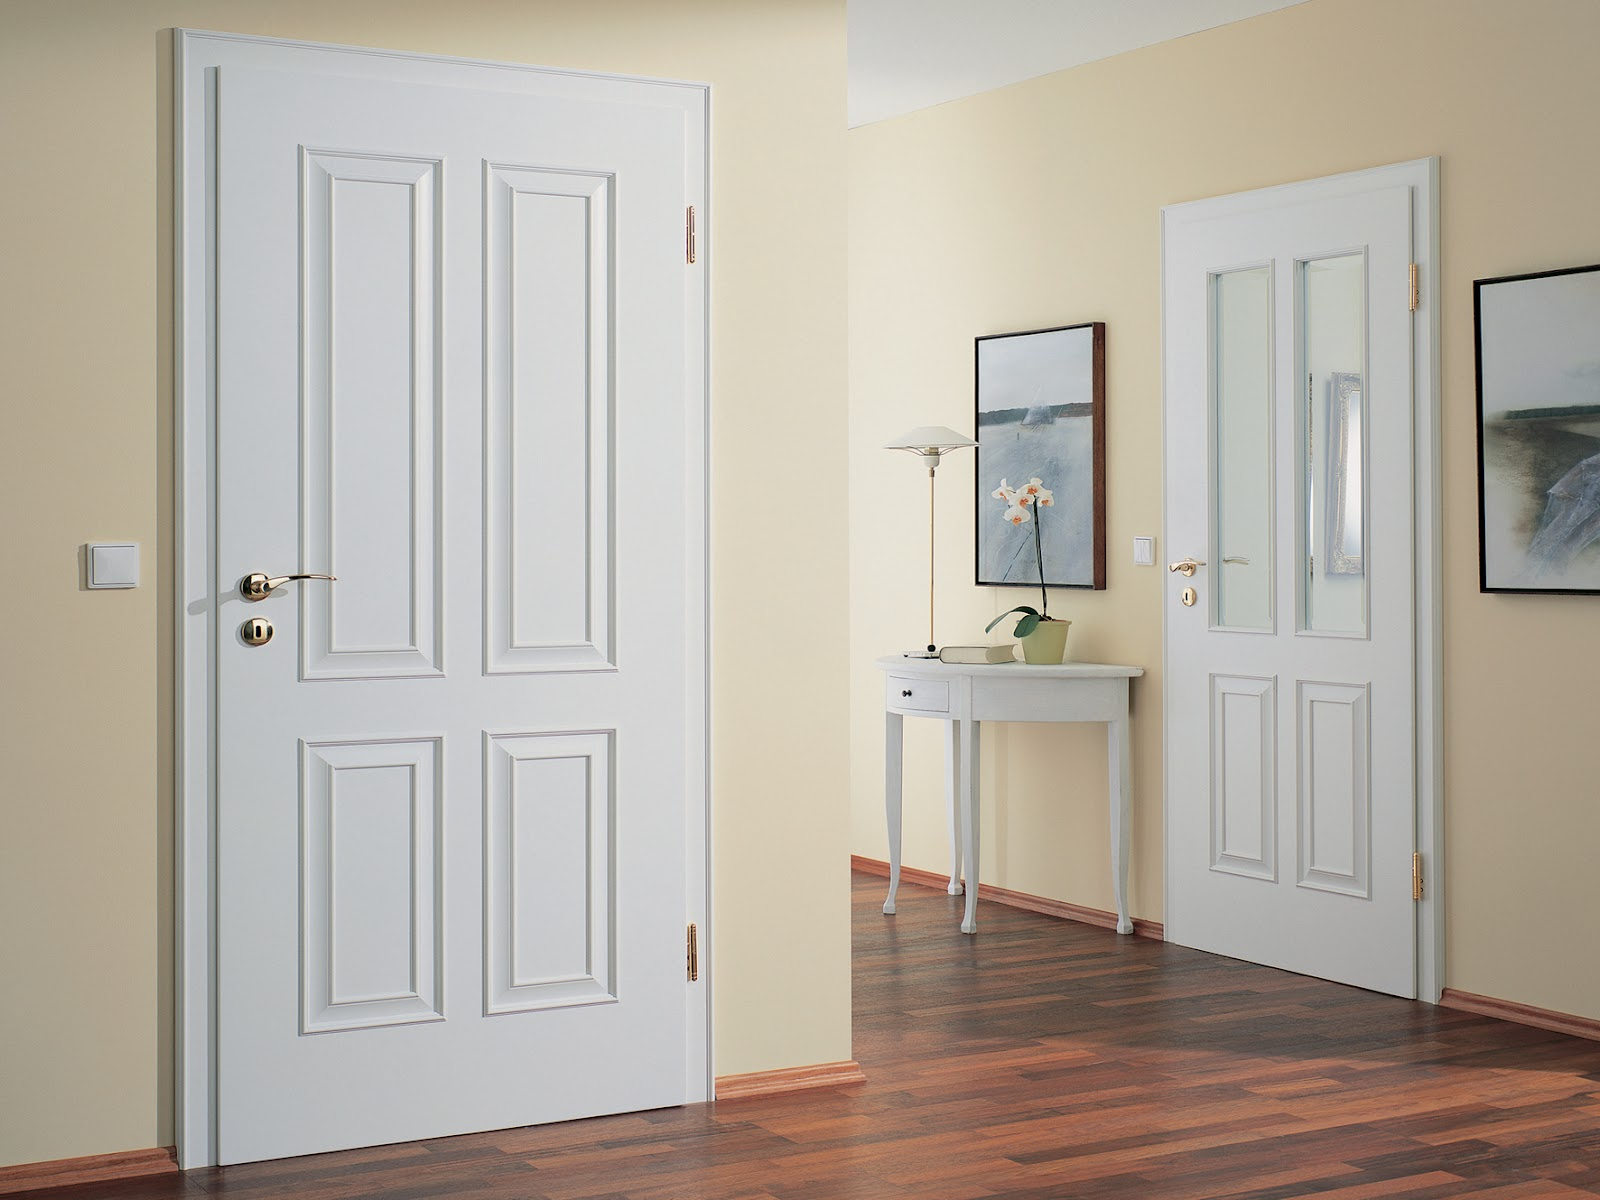 1200 #7F5A4C White Panel Door Set  The Rotary 4 With Solid Panels And Glazed.jpg pic Doors With Glass Panels 42511600